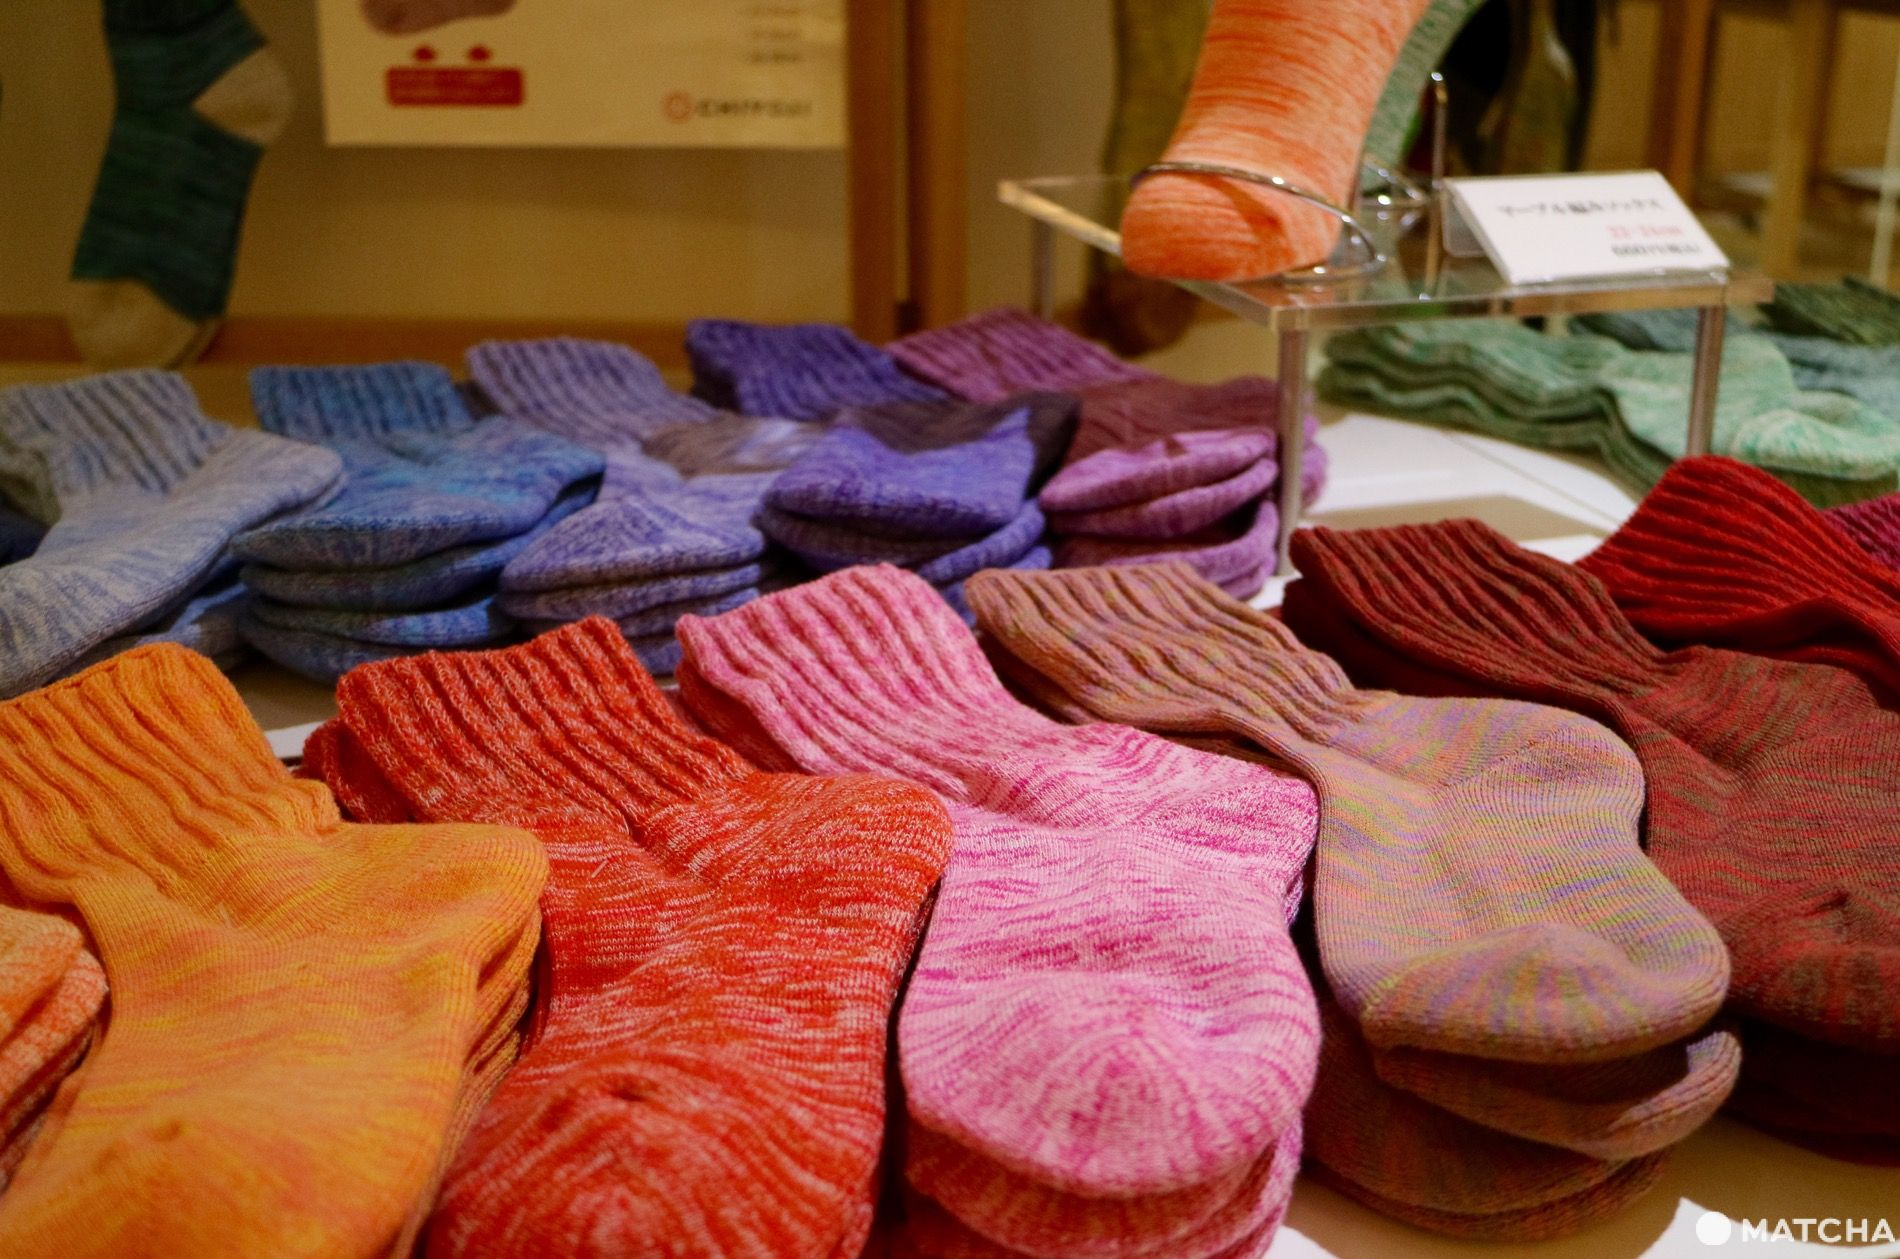 Perfect for Souvenirs! Chiyoji Socks With Great Designs and Functionality